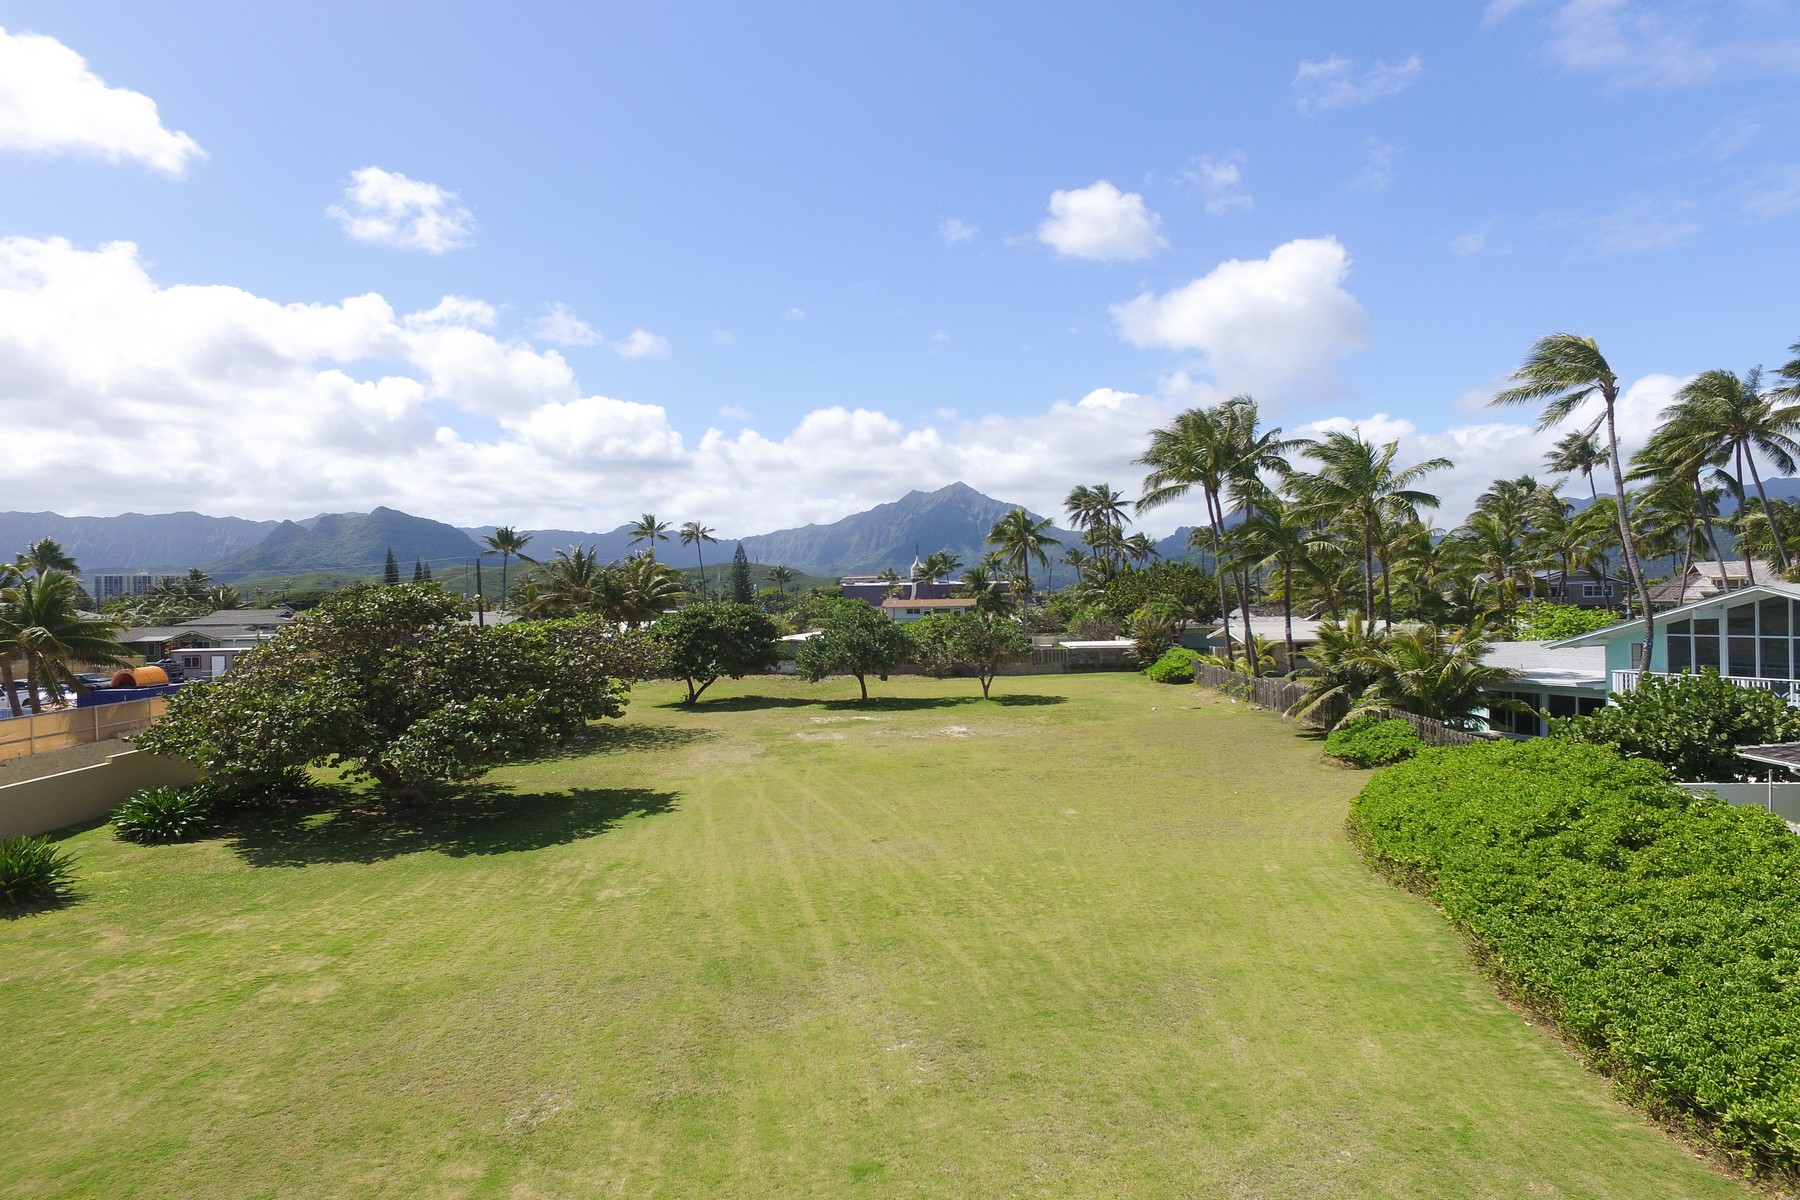 Single Family Home for Active at Beachside 144 Kaapuni Drive Kailua, Hawaii 96734 United States